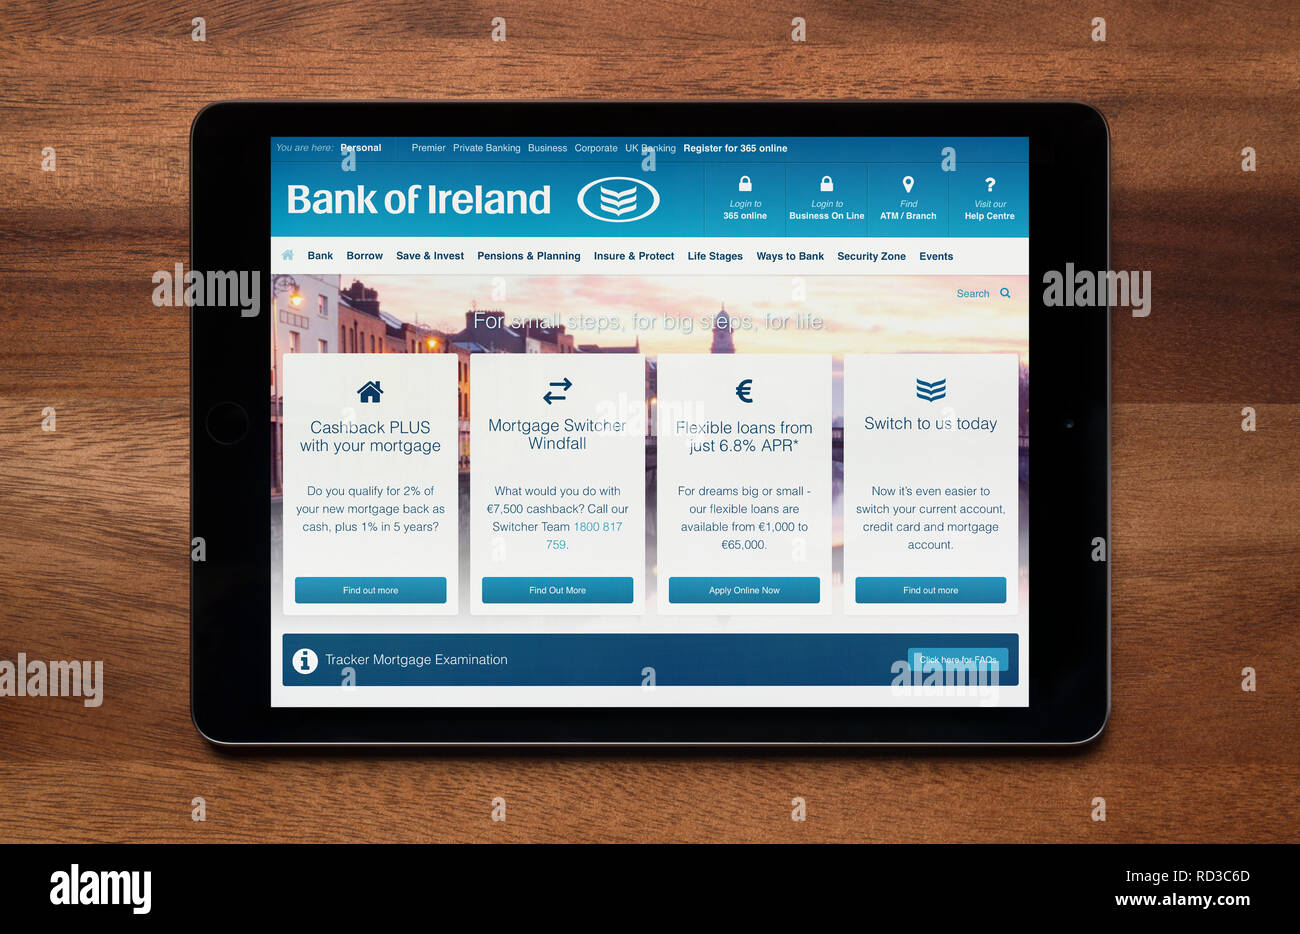 The website of Bank of Ireland is seen on an iPad tablet, which is resting on a wooden table (Editorial use only). - Stock Image